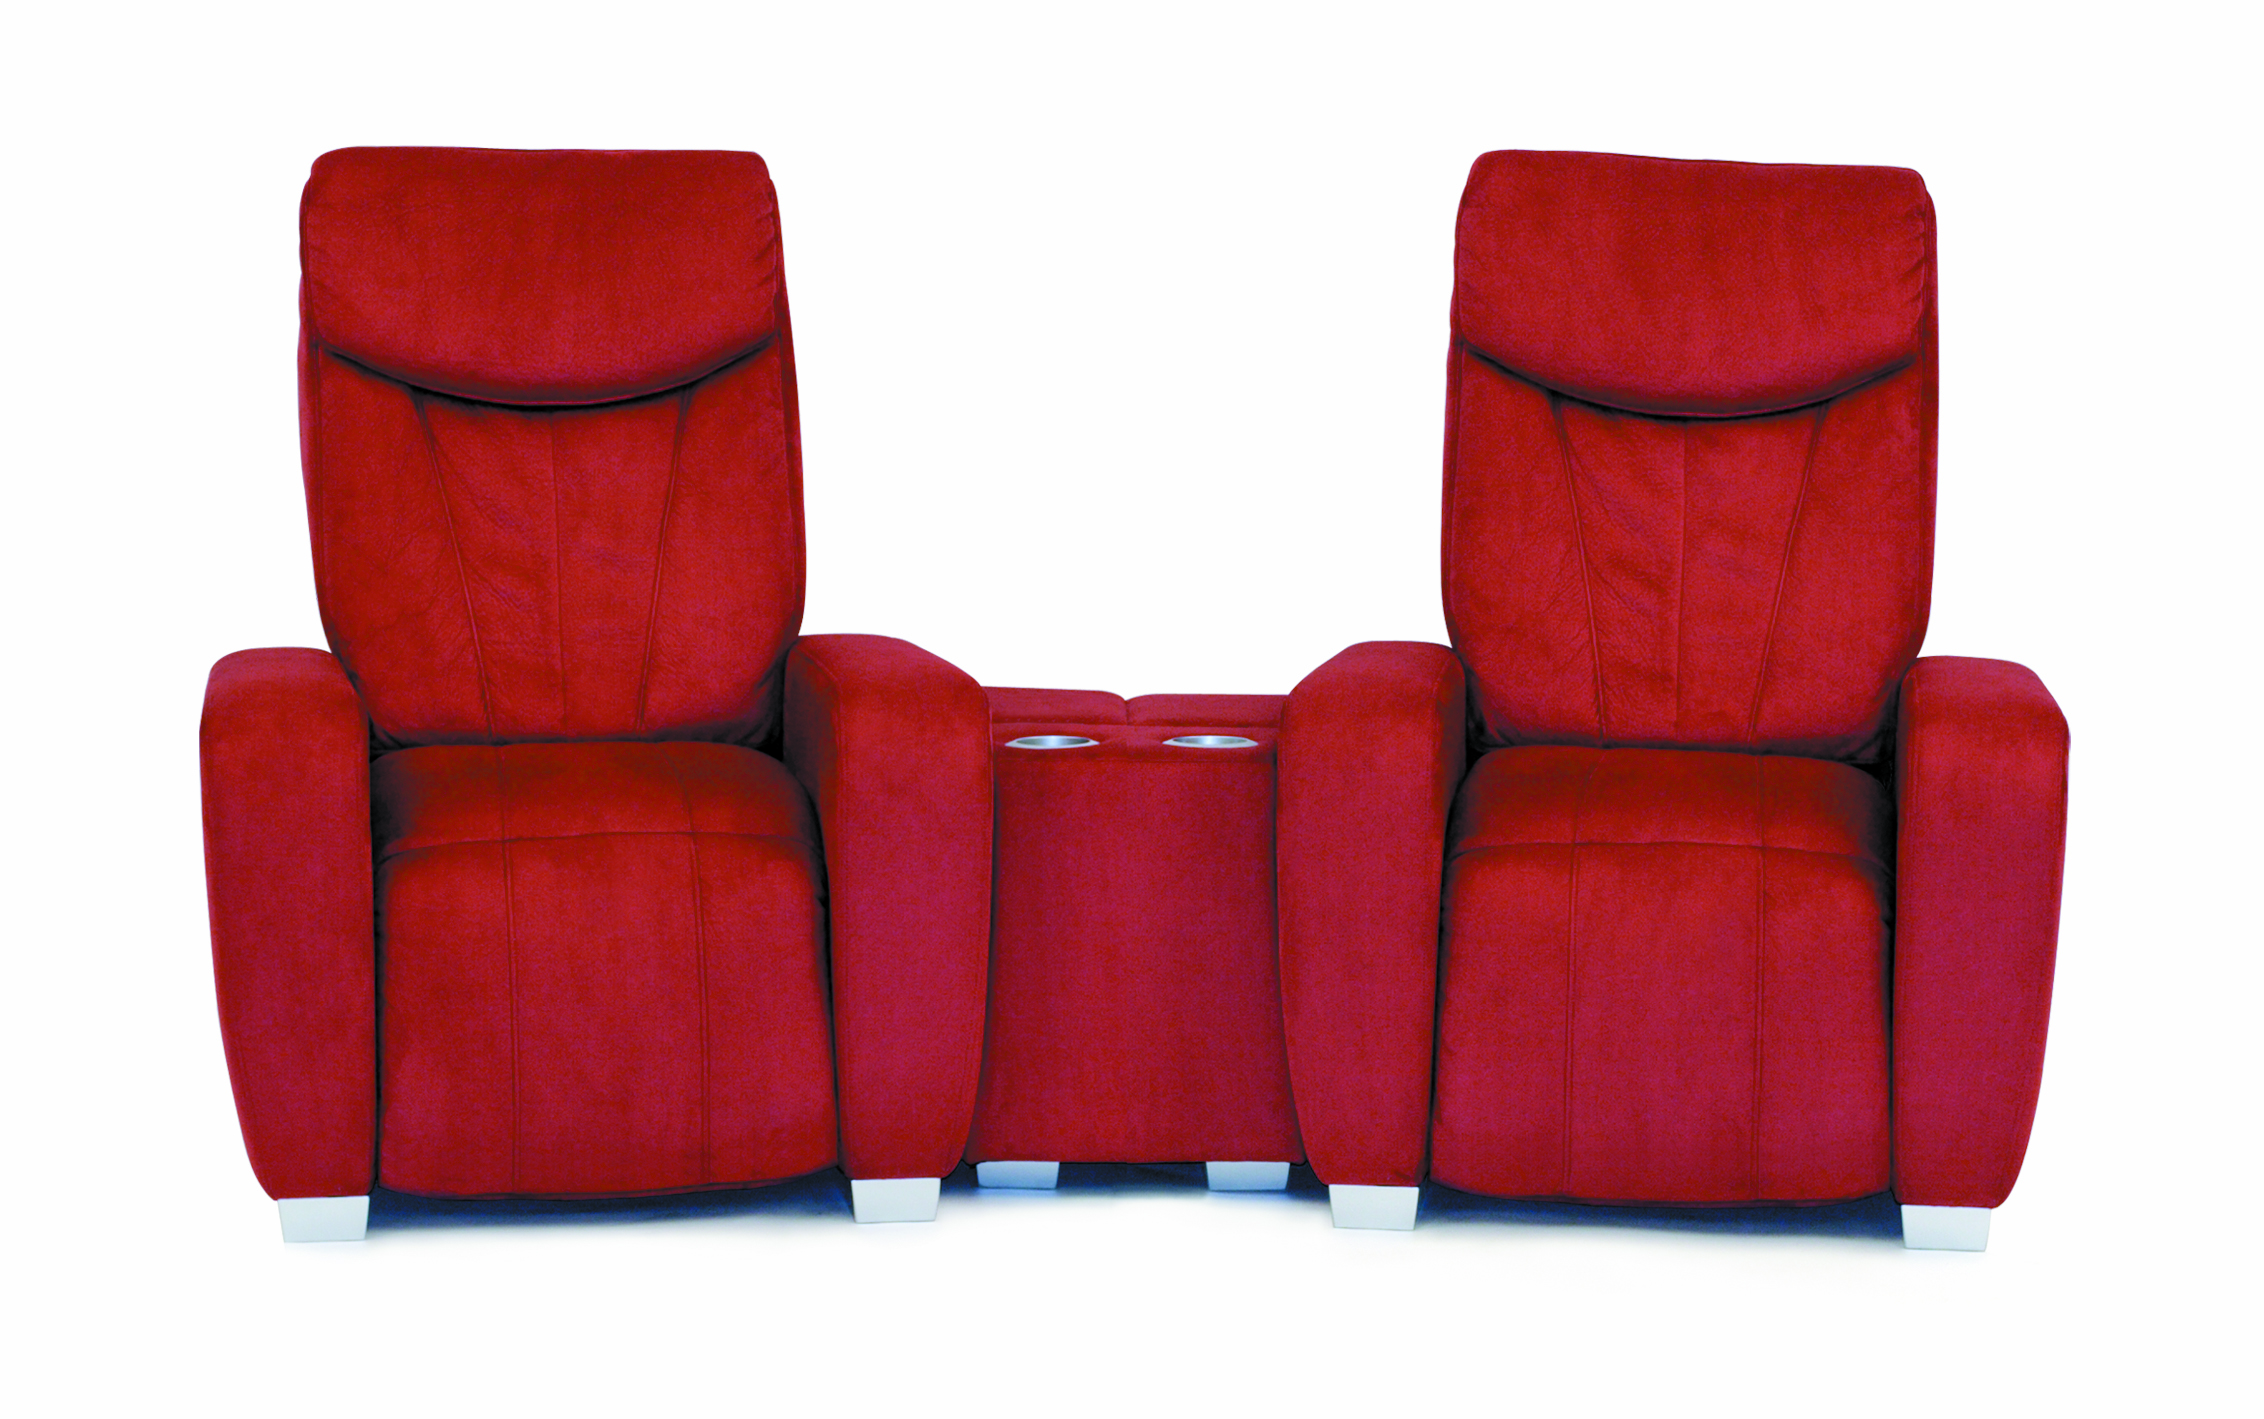 The Ultimate Home Theatre Chairs Unveiled at High Point